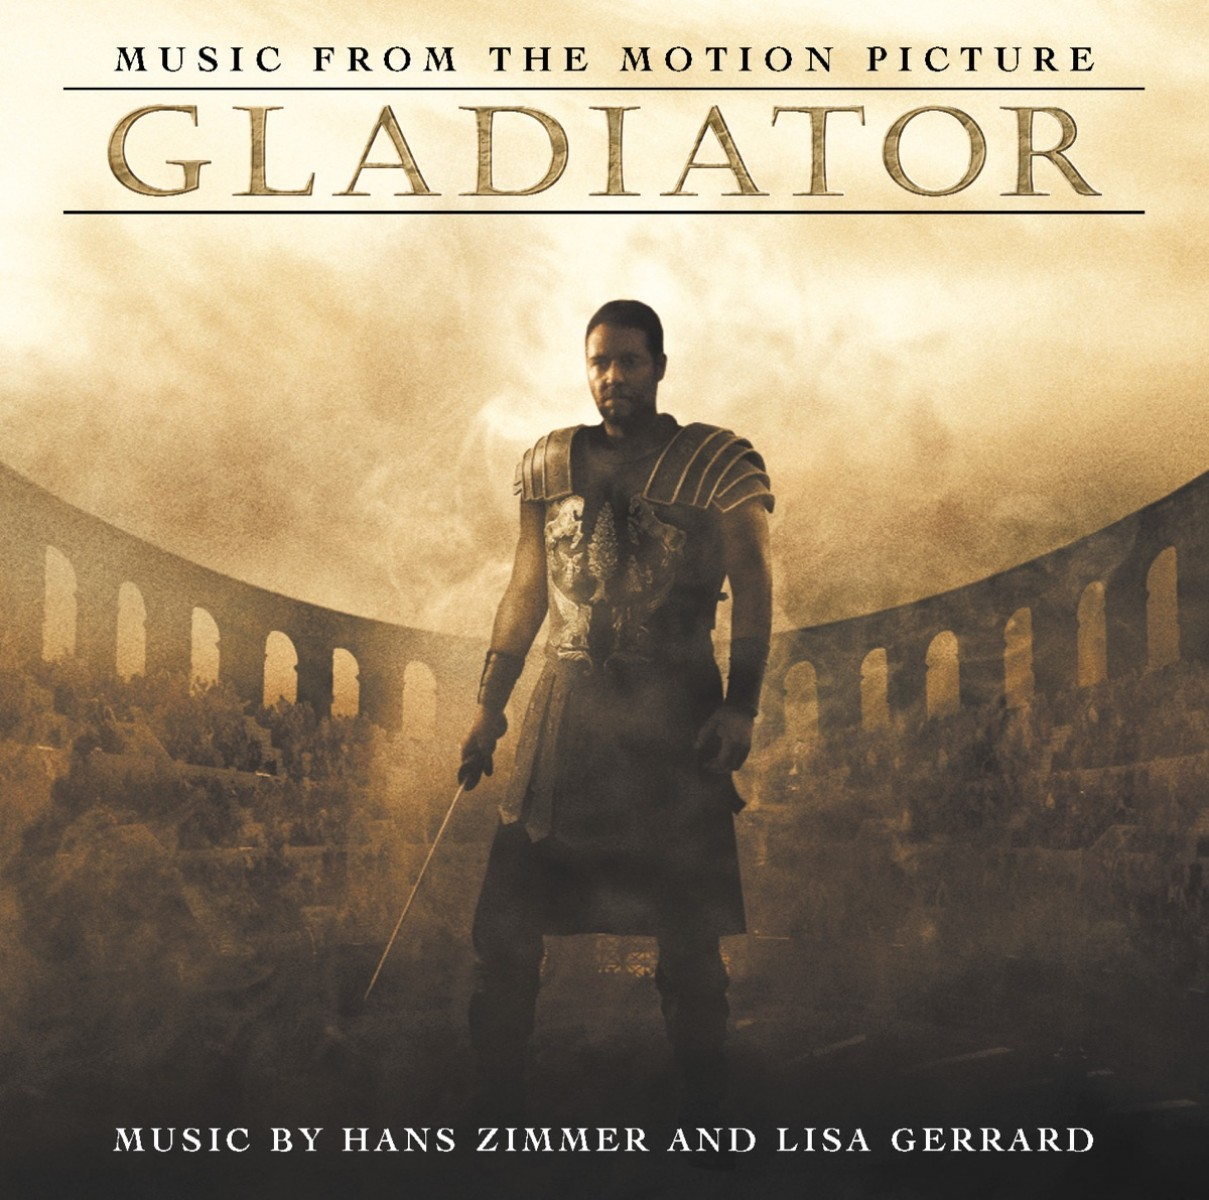 Hans Zimmer - Gladiator (Soundtrack from the Motion Picture) VINYL - 028948321285